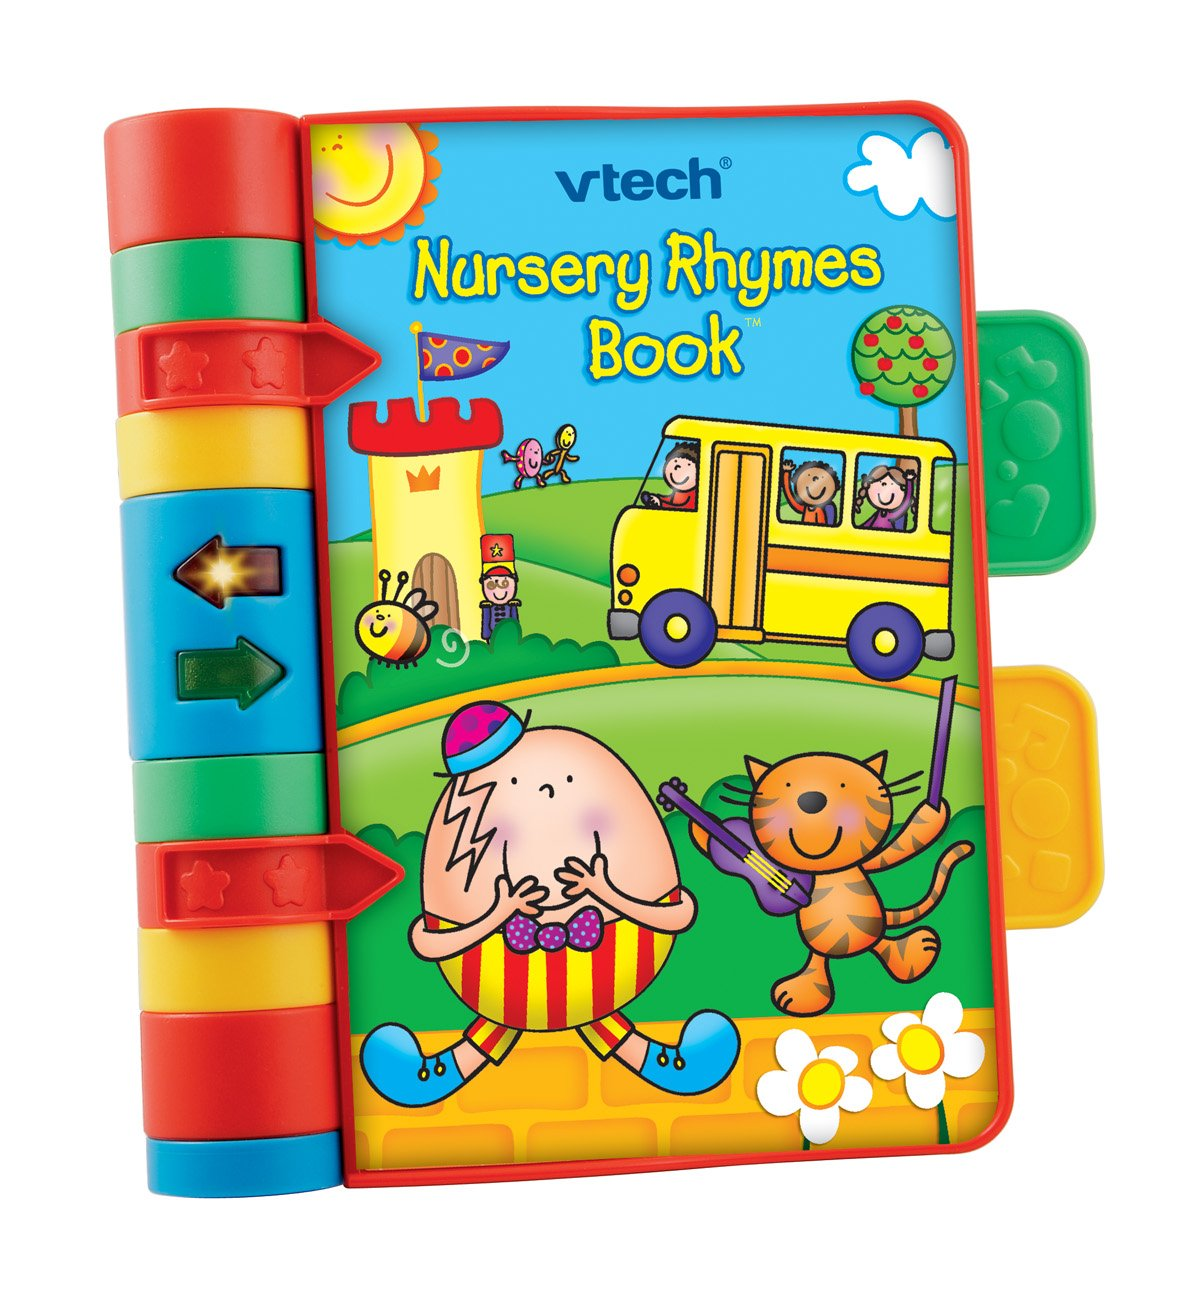 VTech Baby Nursery Rhymes Book   Light Up, Interactive, Musical Baby Book with Sounds & Phrases   Suitable for Babies from 6 Months+